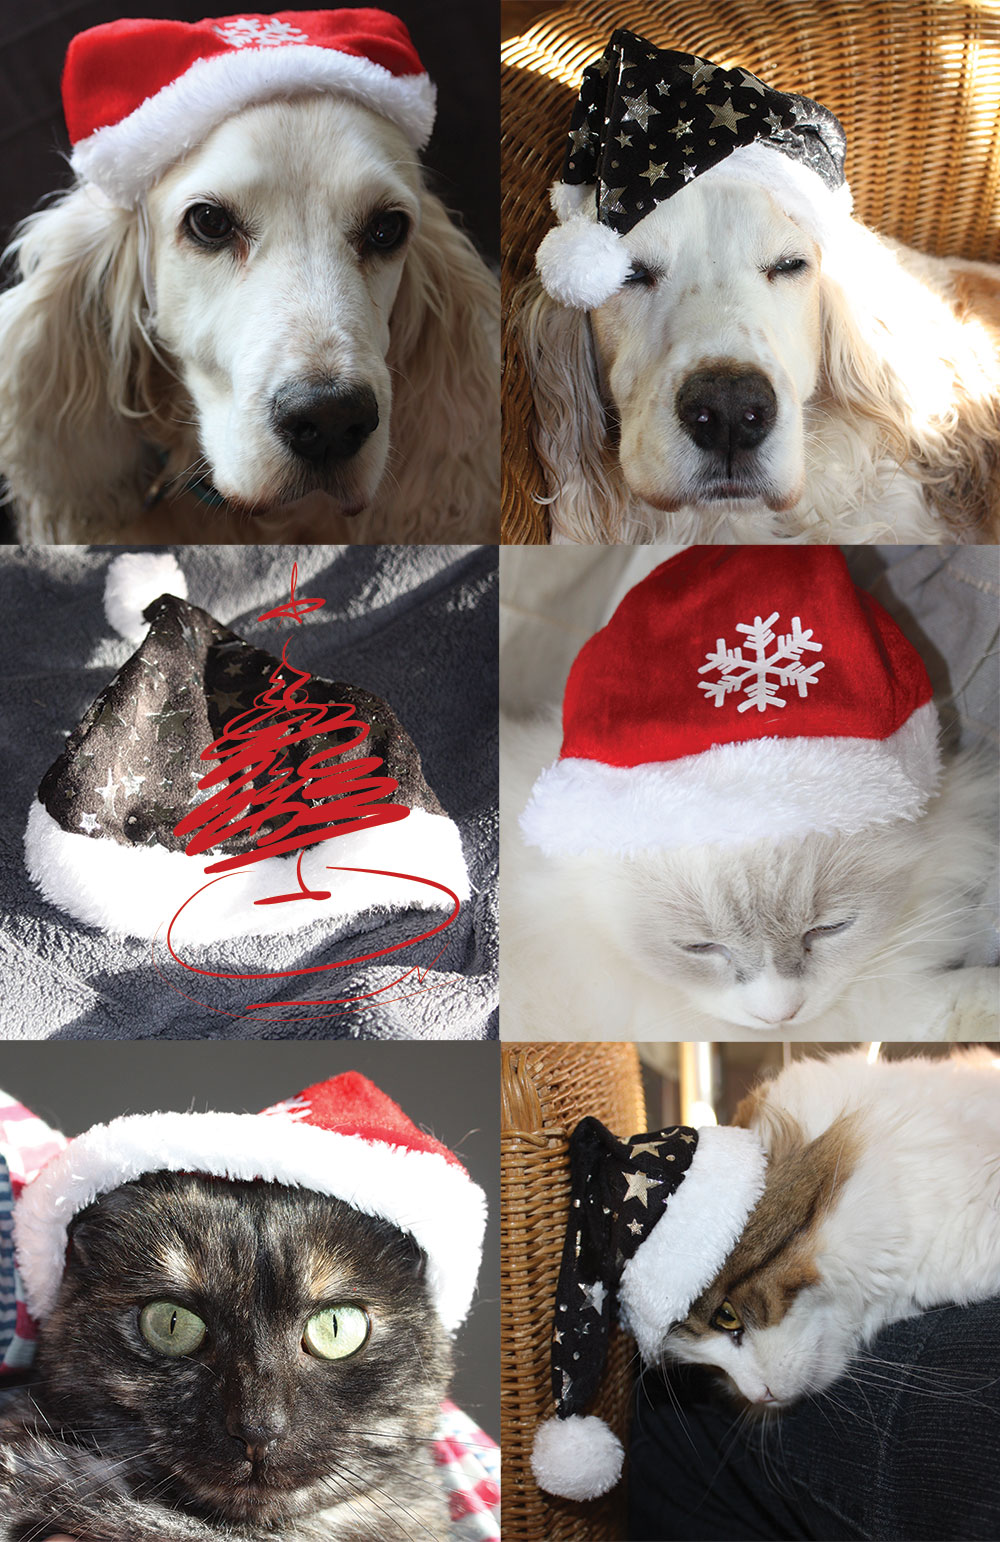 Season's greetings from our web team's menagerie: Milly, George, (camera-shy) Iggy, Tinker, Bean and Pippin